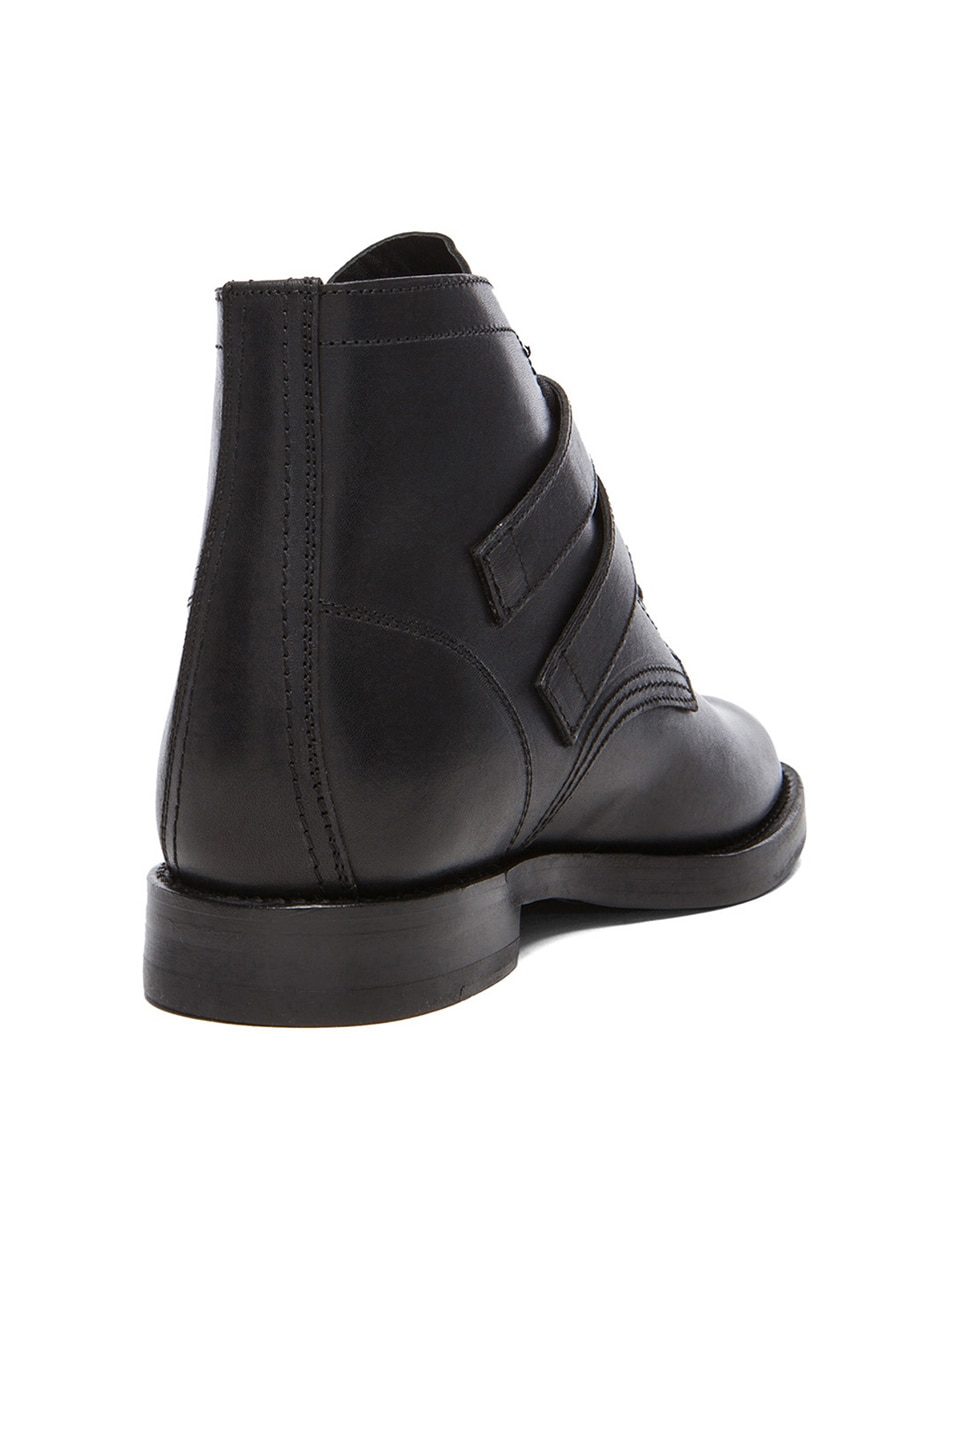 Image 3 of Saint Laurent Leather Buckled Ankle Boots in Black